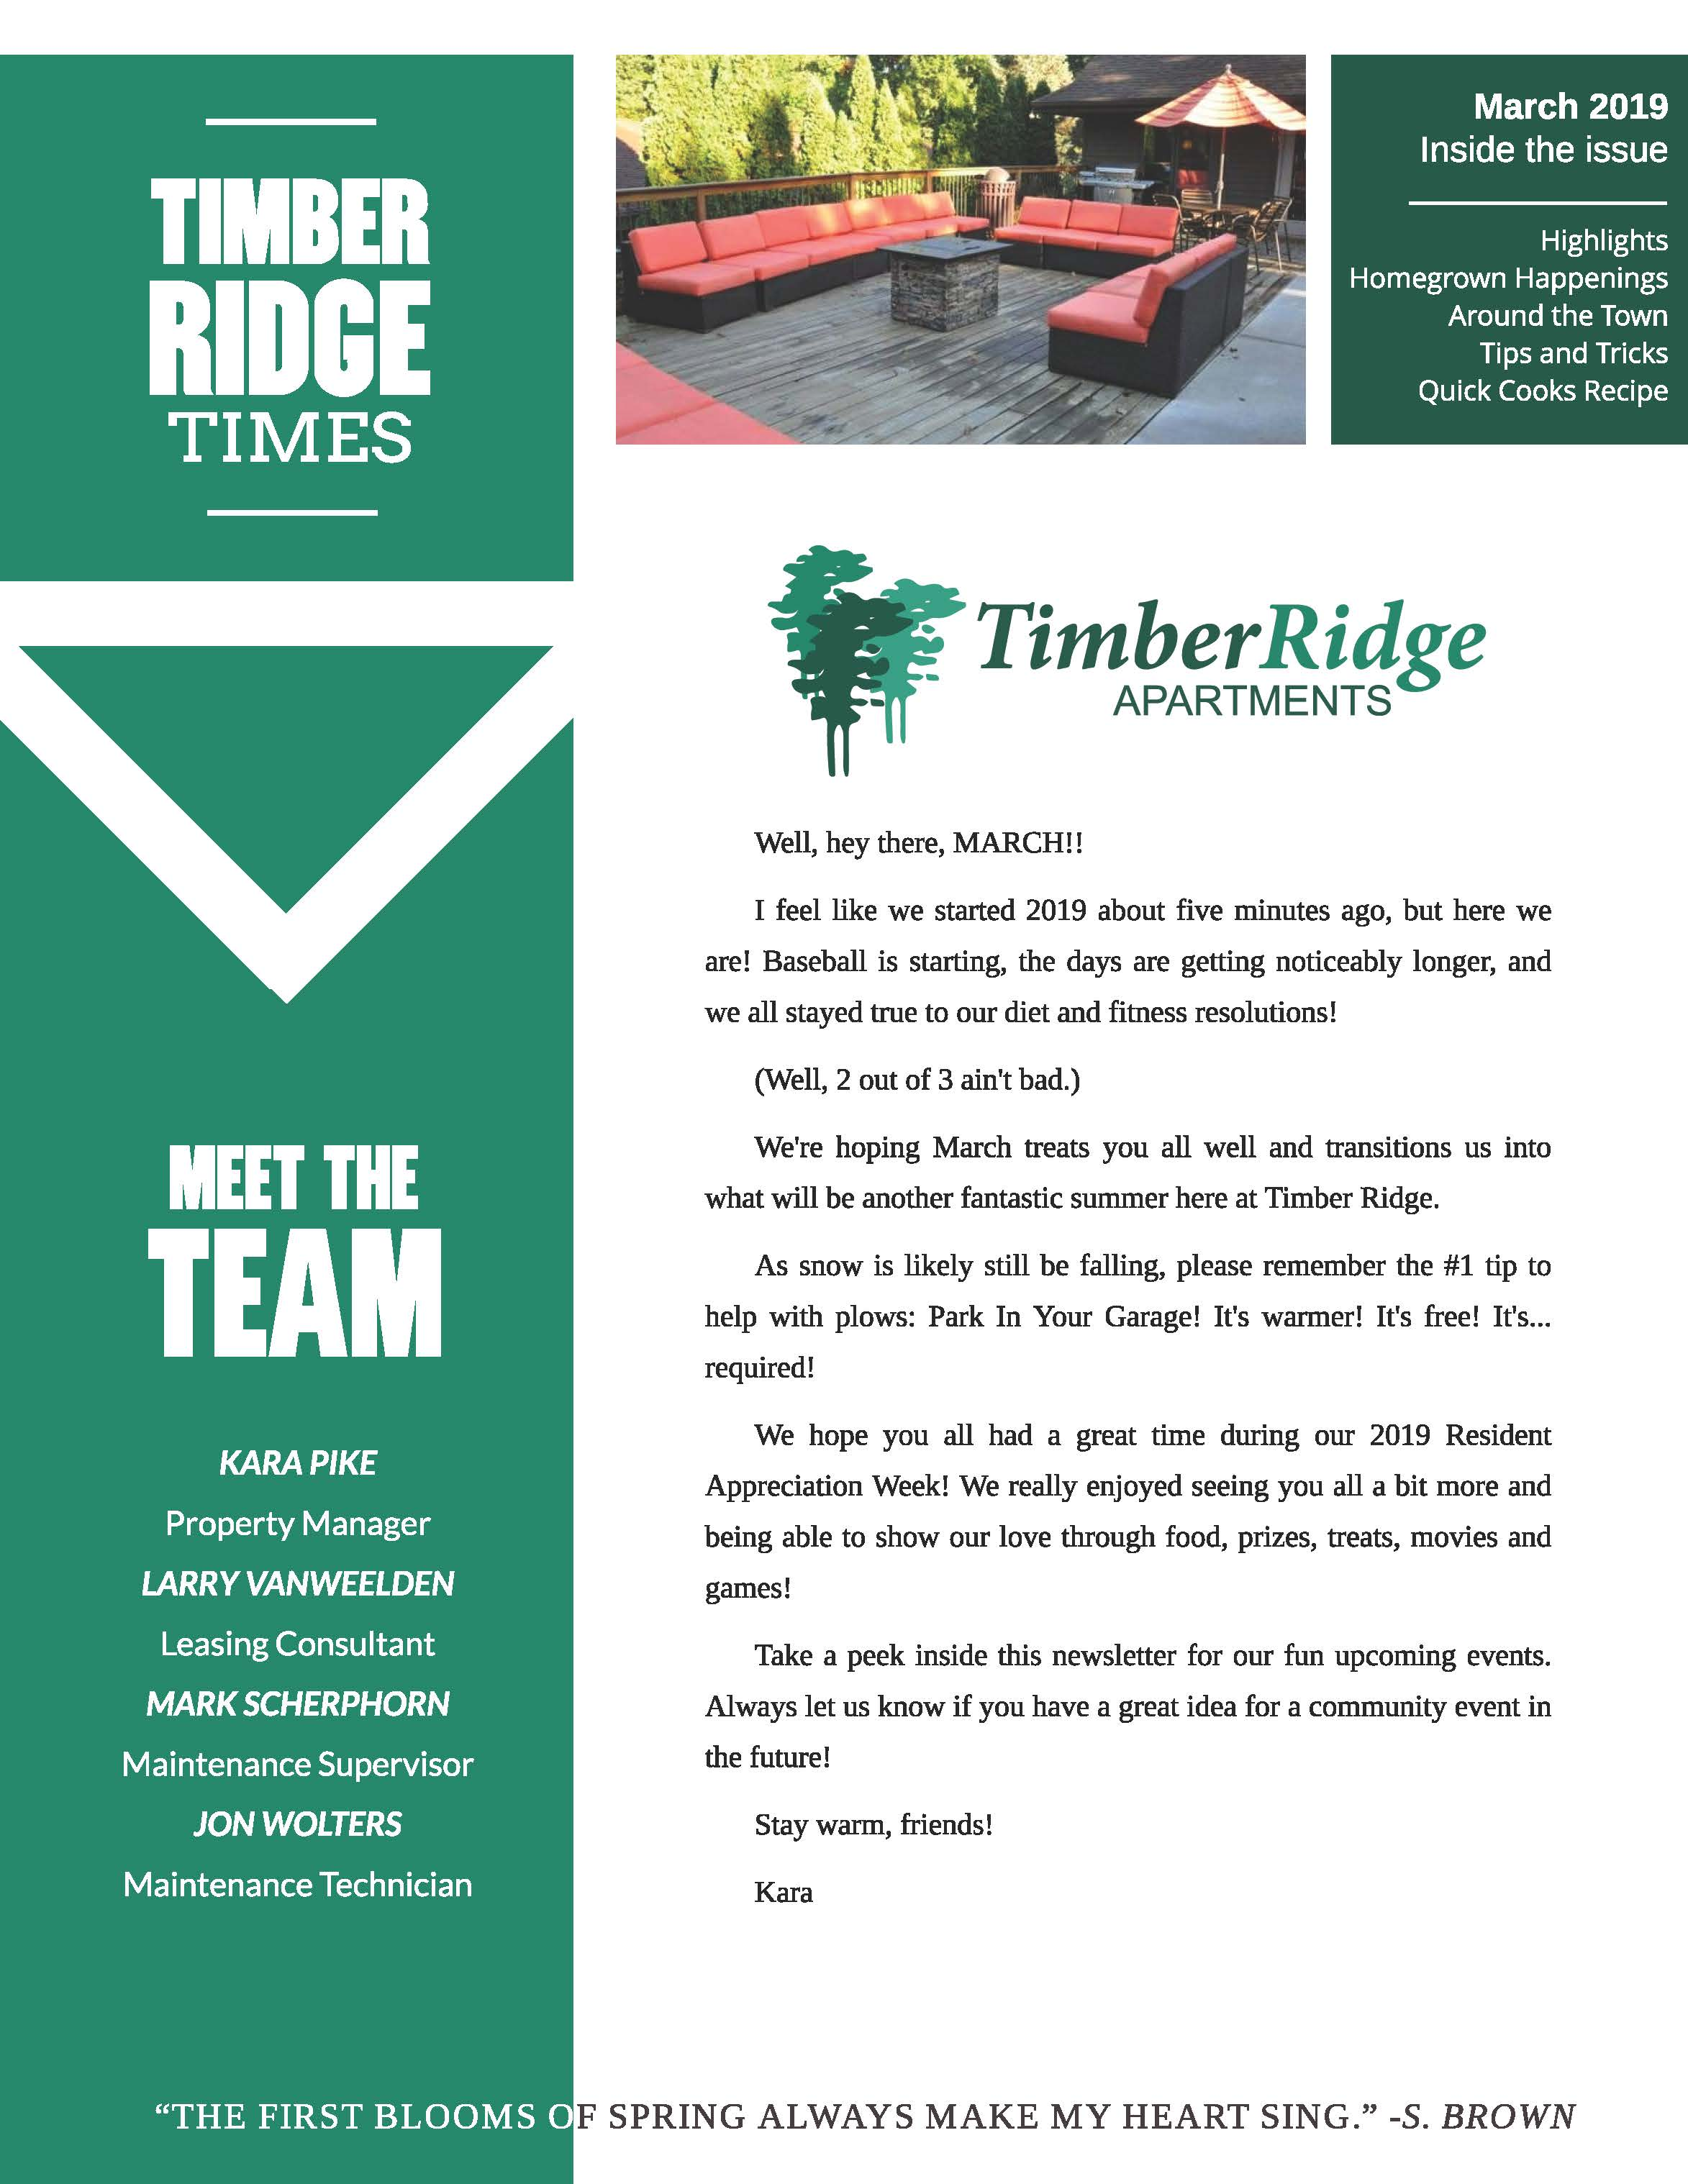 March 2019 Newsletter The Timber Ridge Times